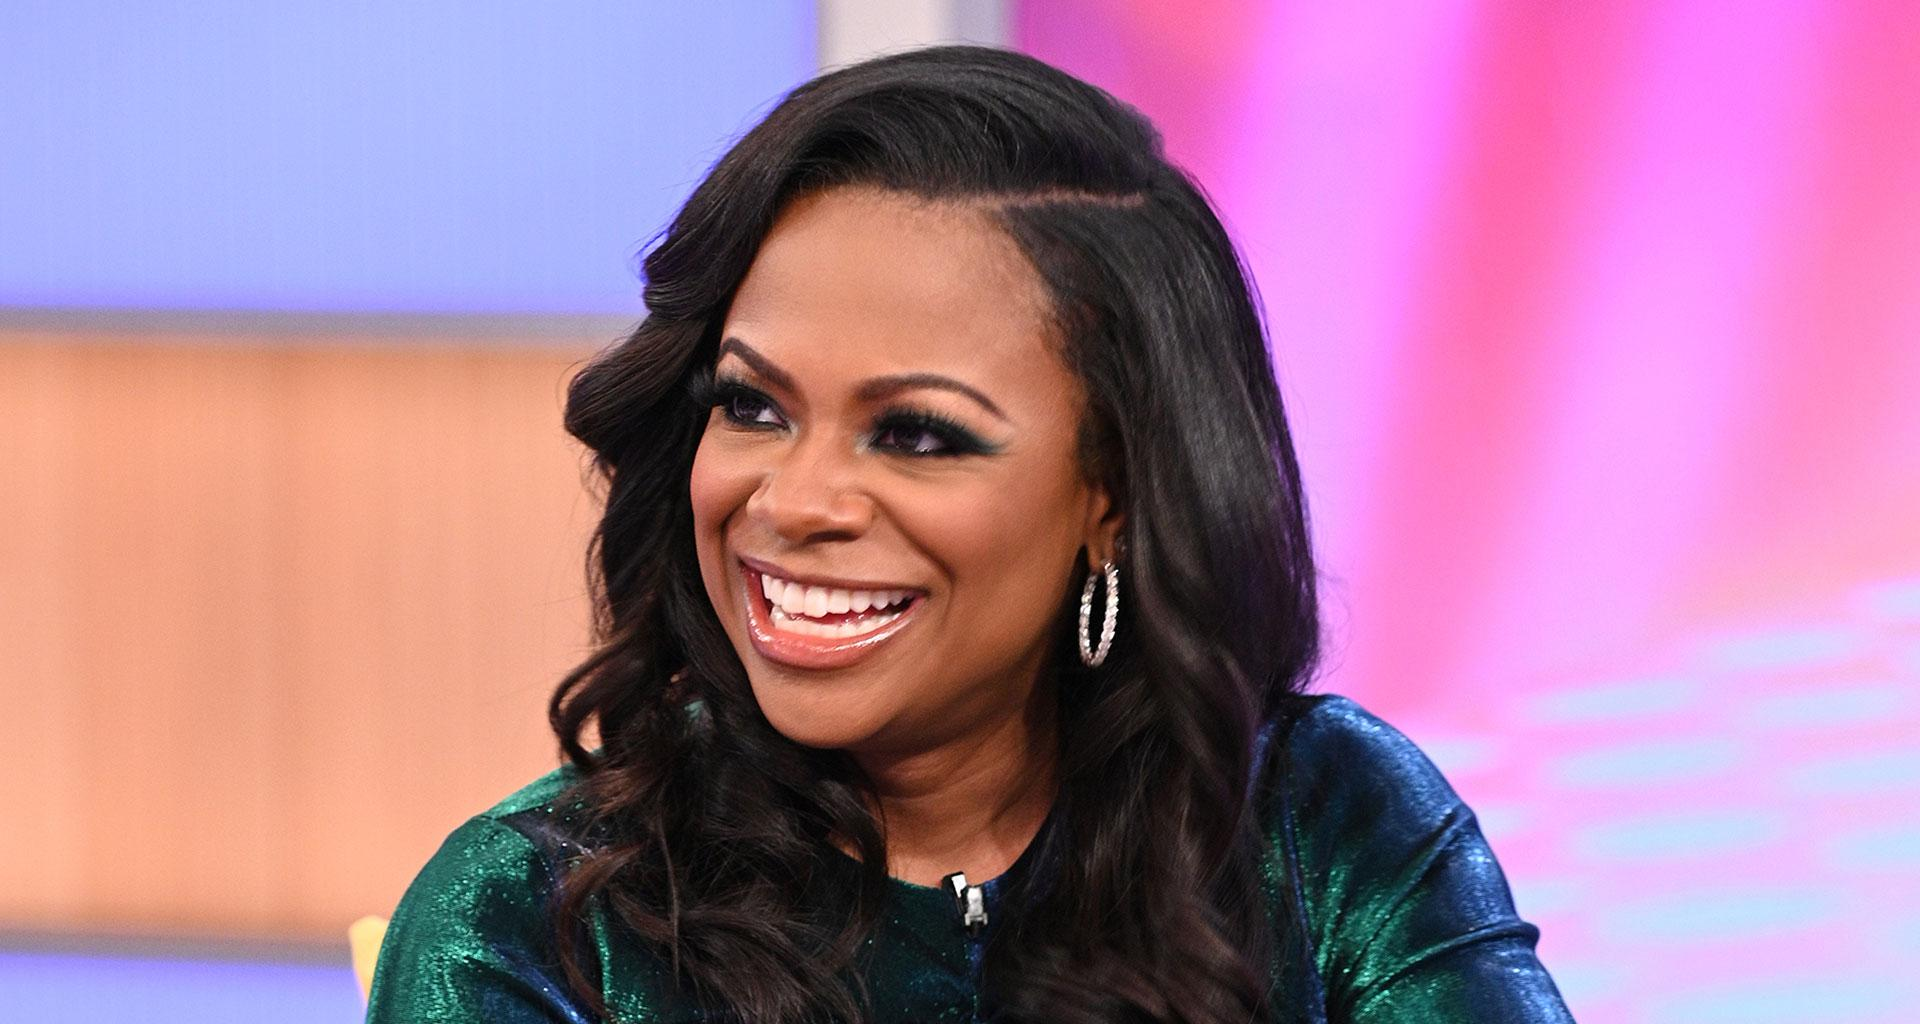 Kandi Burruss Shares A New Video On Her YouTube Channel, Detailing Her Cosmetic Procedure